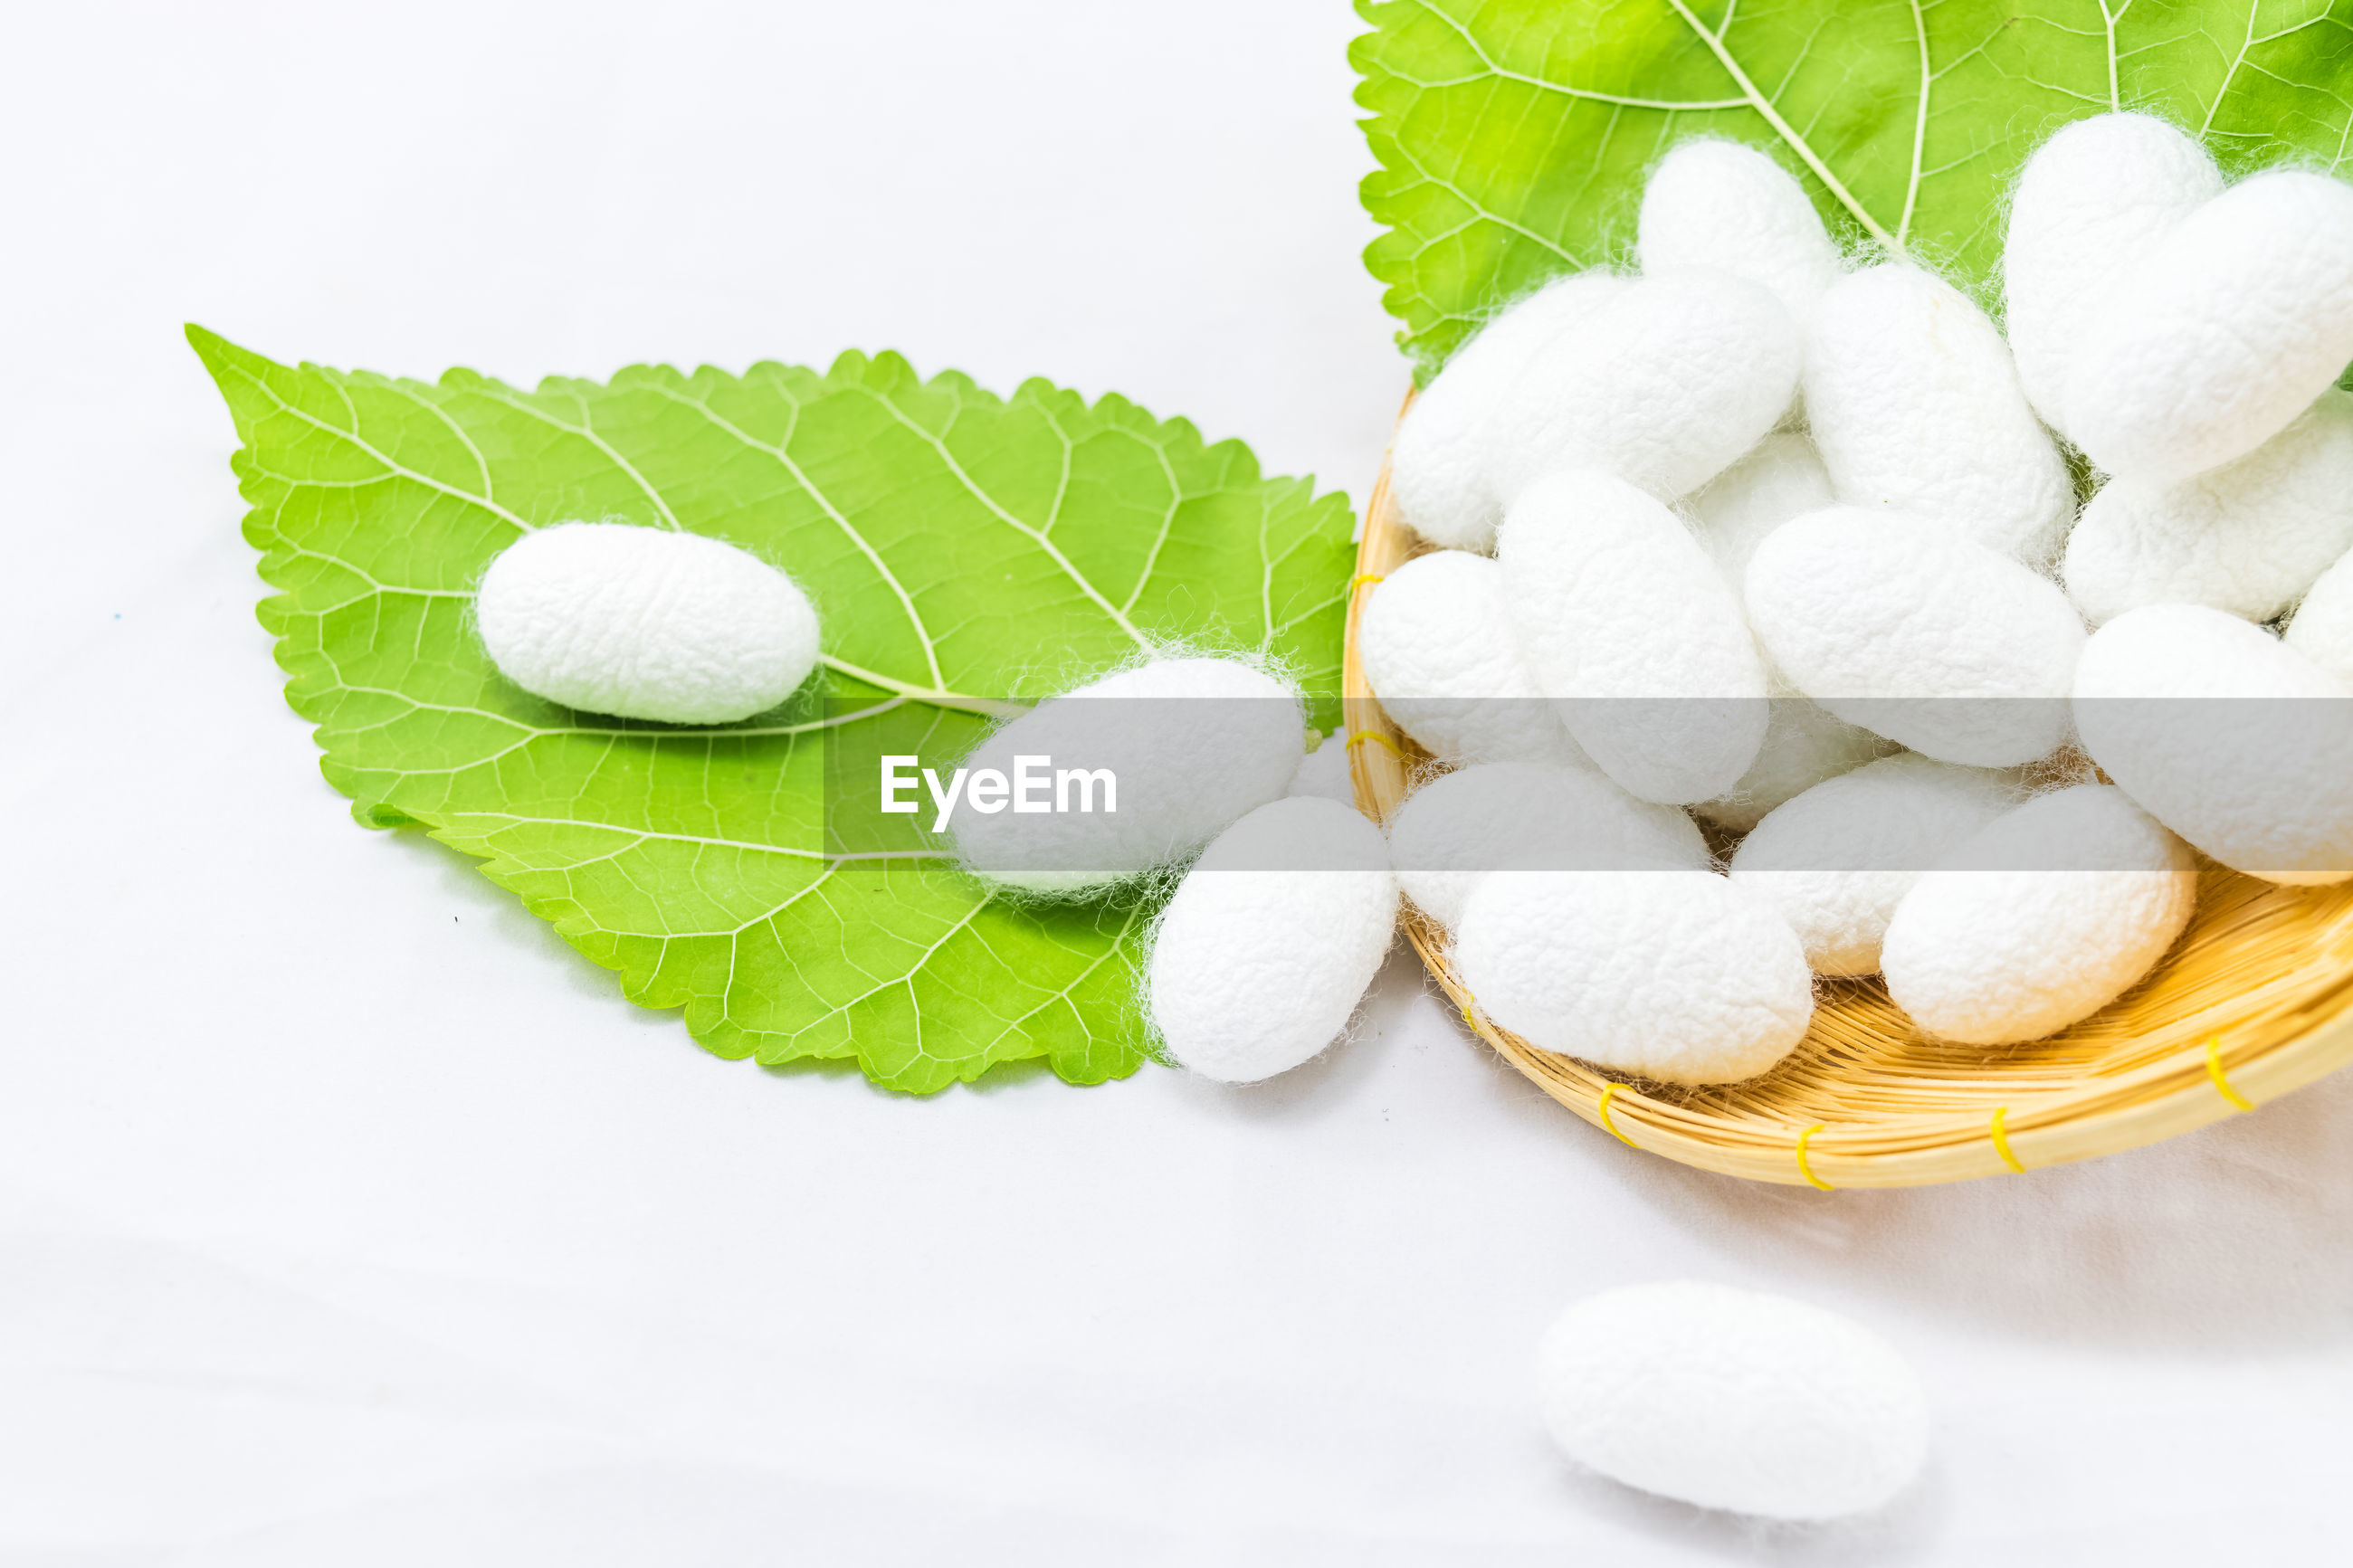 High angle view of coccons and leaves in basket against white background